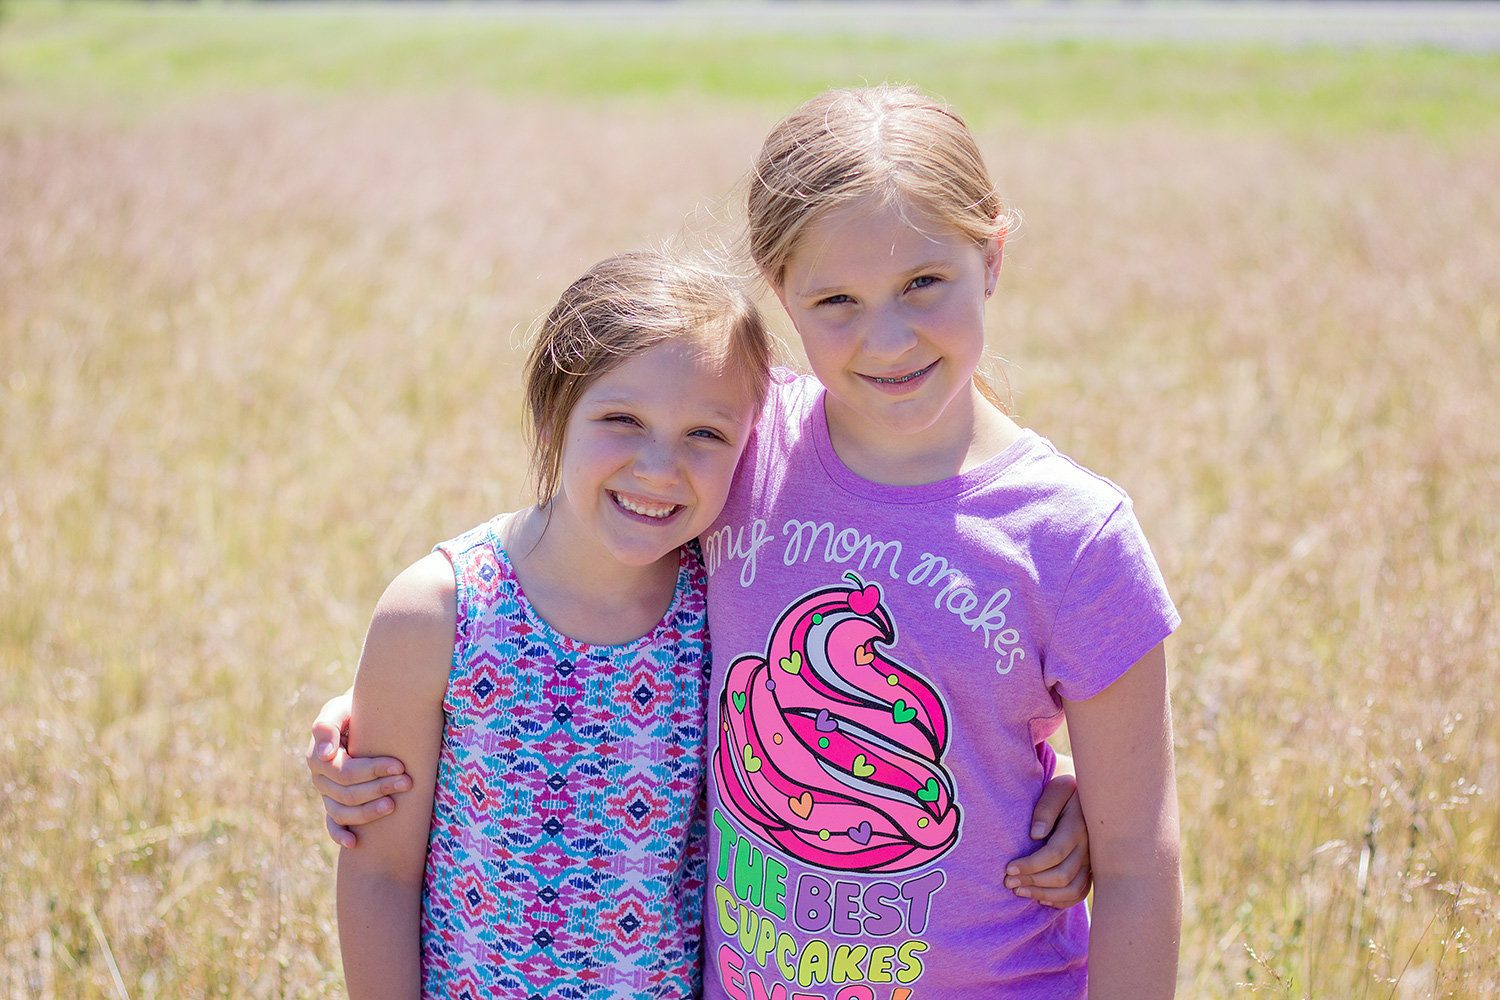 two girls backlit by the sun - 3 Tips For Photographing Kids in Harsh Light